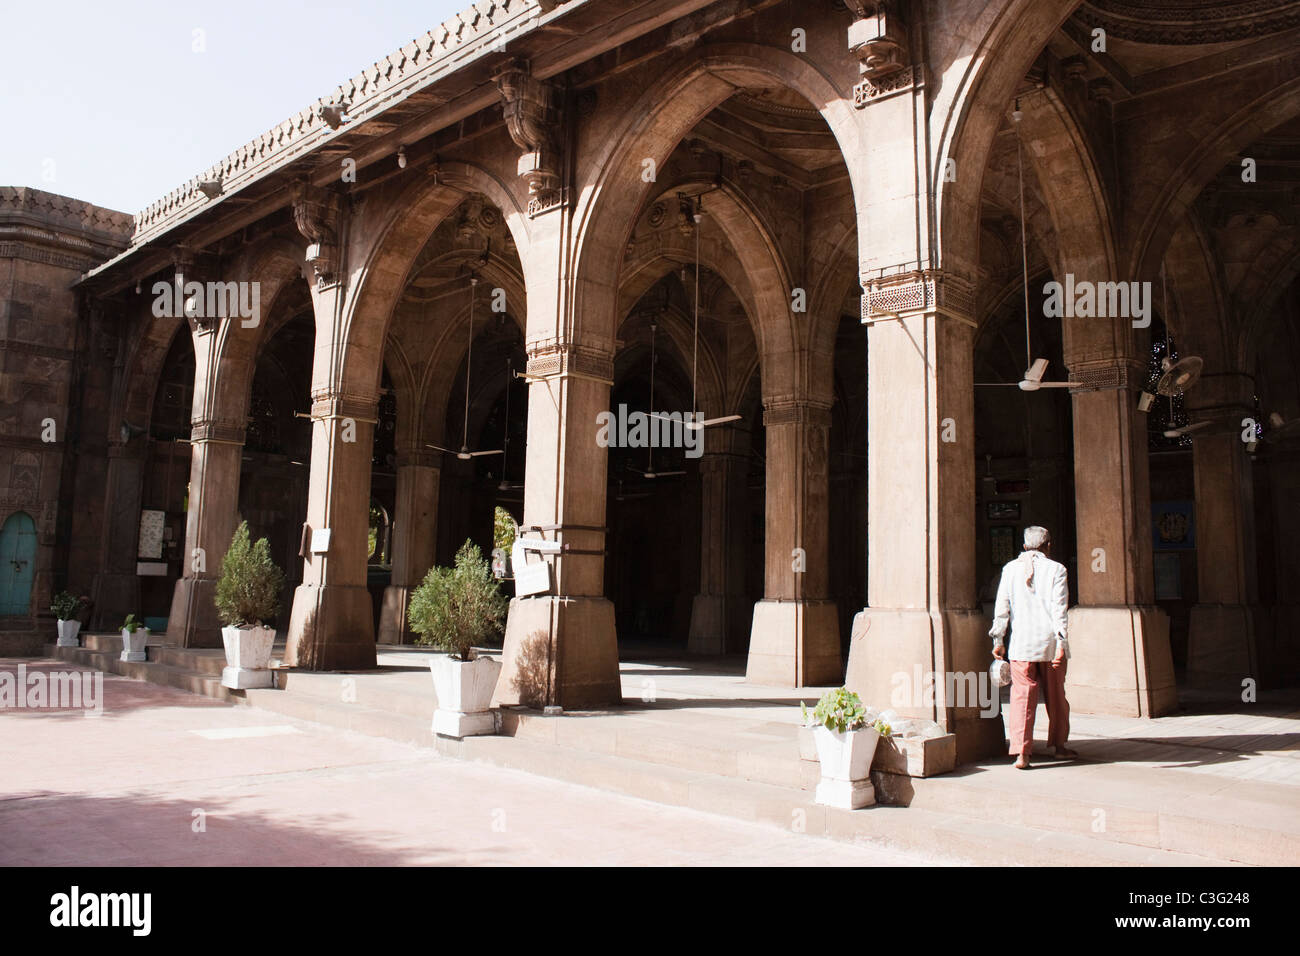 Man walking in a mosque, Siddi Sayed Mosque, Ahmedabad, Gujarat, India - Stock Image